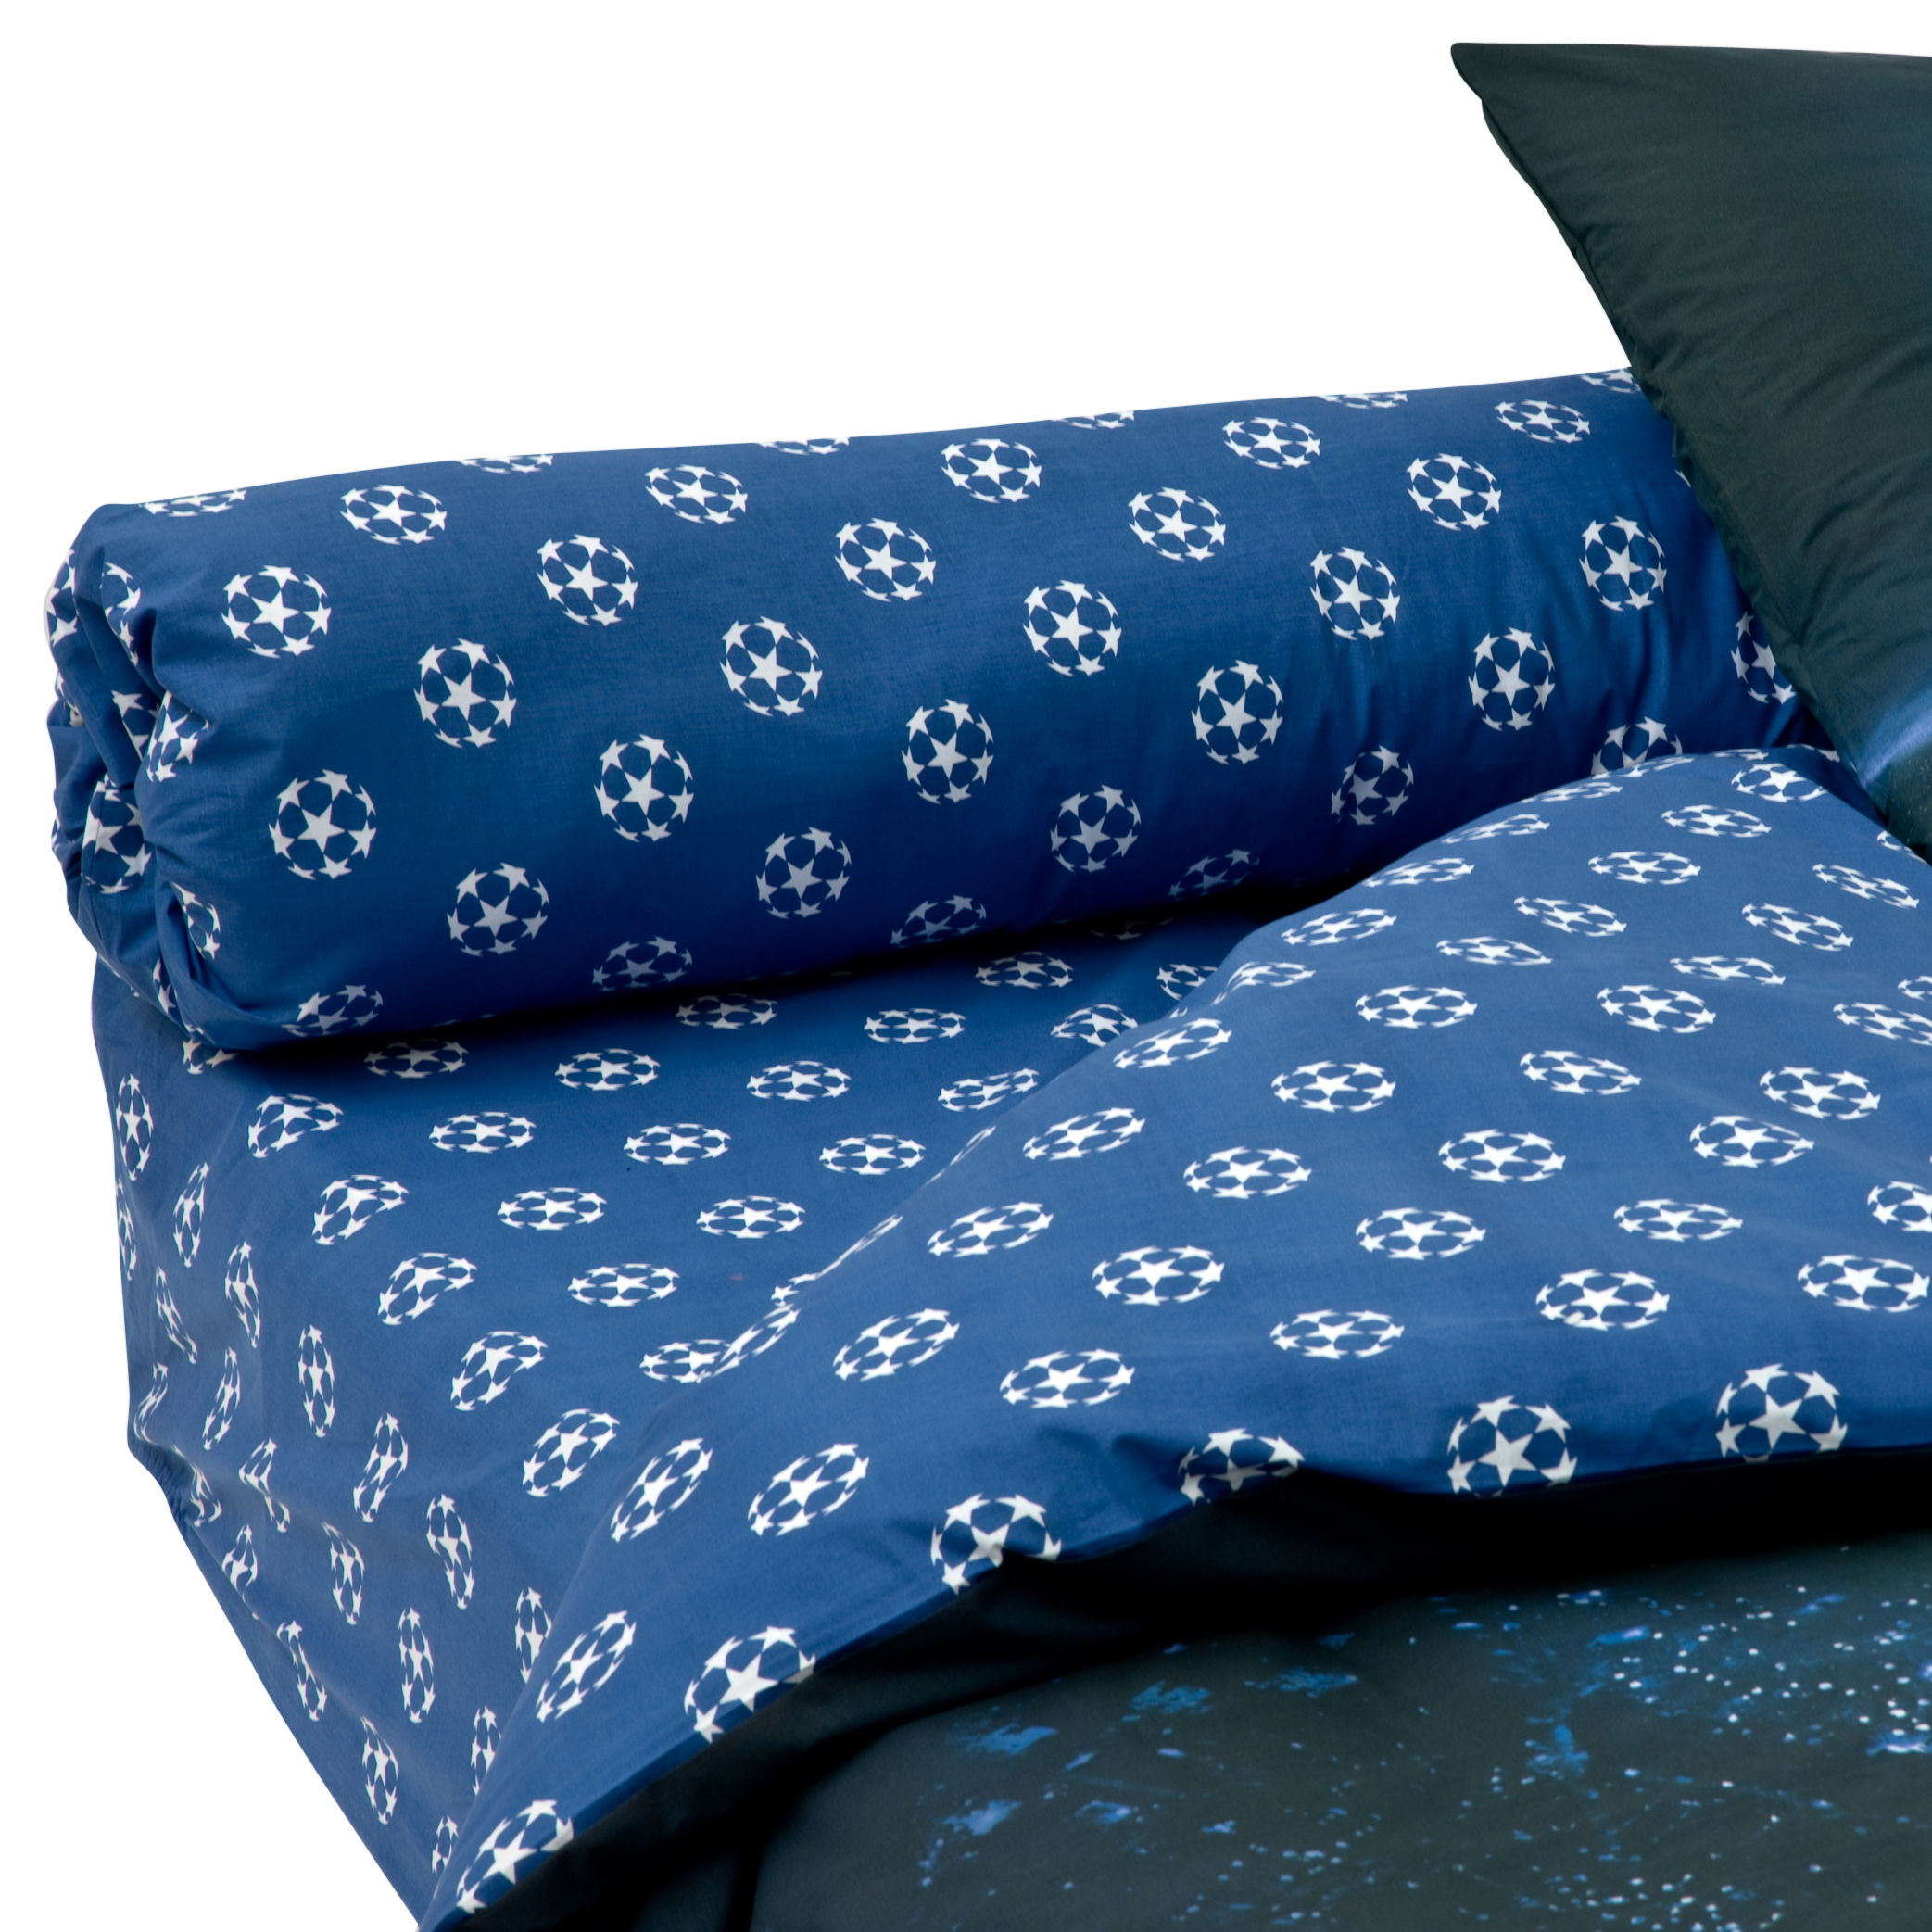 UEFA Champions League Bolster Pillow Case - 86 x 185